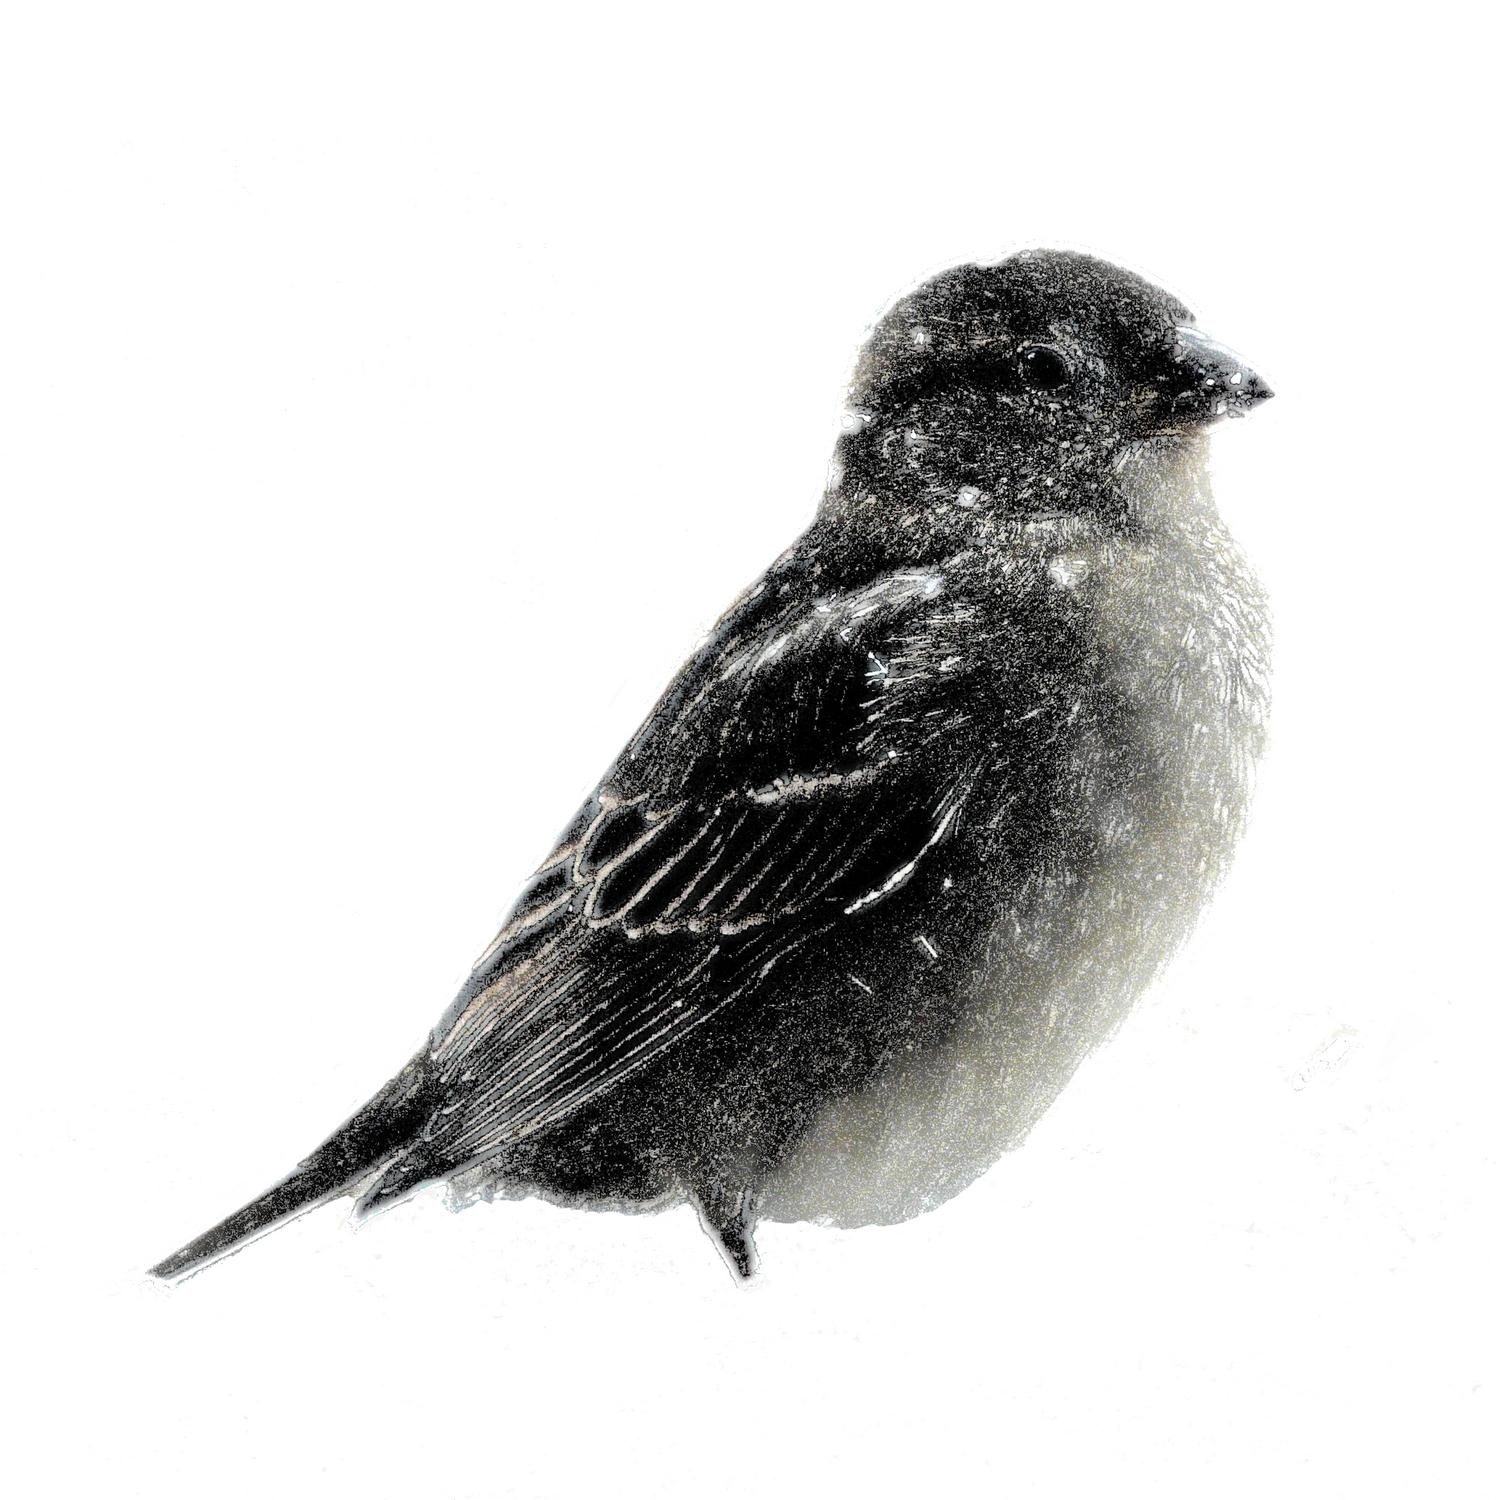 -  Panasonic DMC-FZ18 - Small bird in the snow in the manner of a mezzotint. - Tony Karp, design, art, photography, techno-impressionist, techno-impressionism, aerial photography , drone , drones , dji , mavic pro , video , 3D printing - Books -